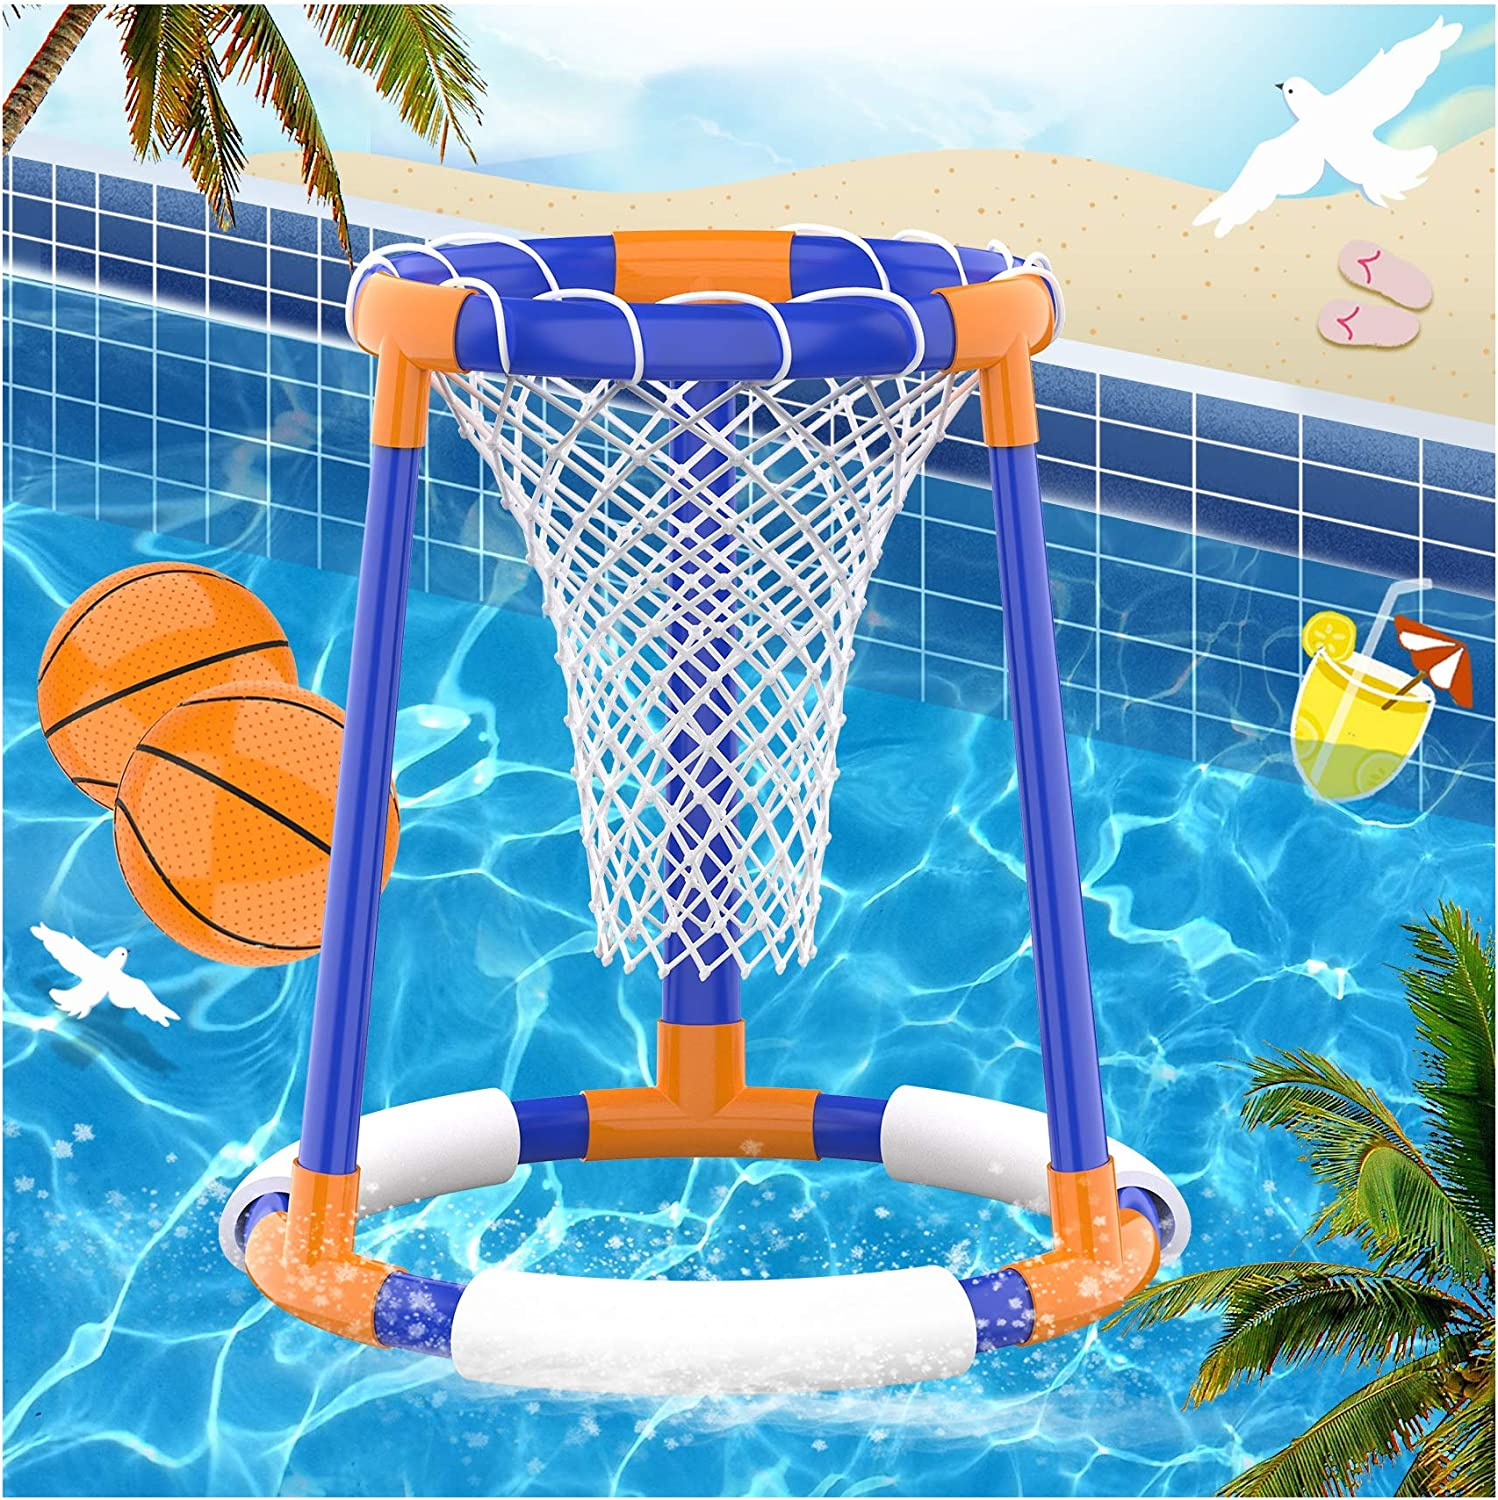 Pool Toys for 3+ Years Old, Pool Basketball Hoop Set for Kids, Floating Water Basketball Game for Swimming Pool, Inflatable Basketball Pool Game for Kids Adults, 2 Balls with a Net and Pump Included